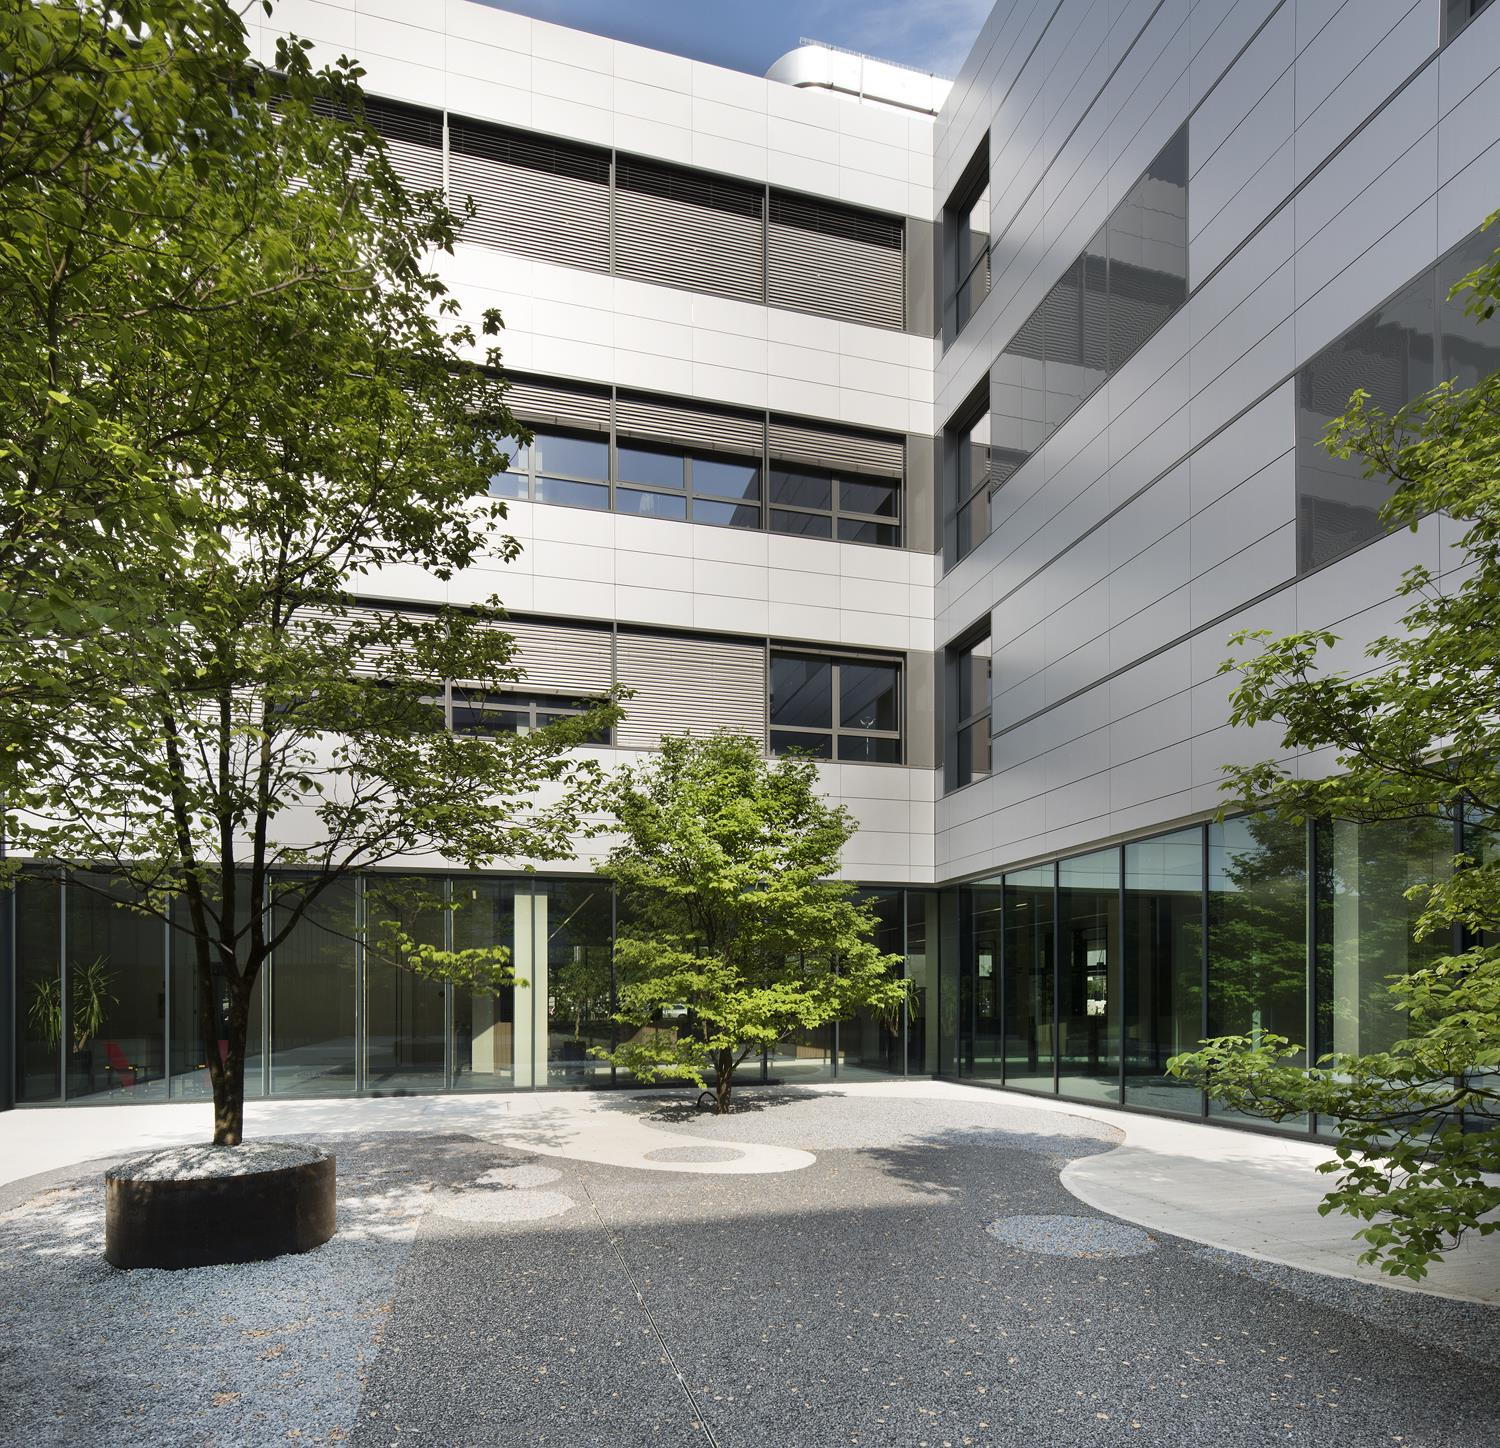 Siemens Headquarter: Photo 18